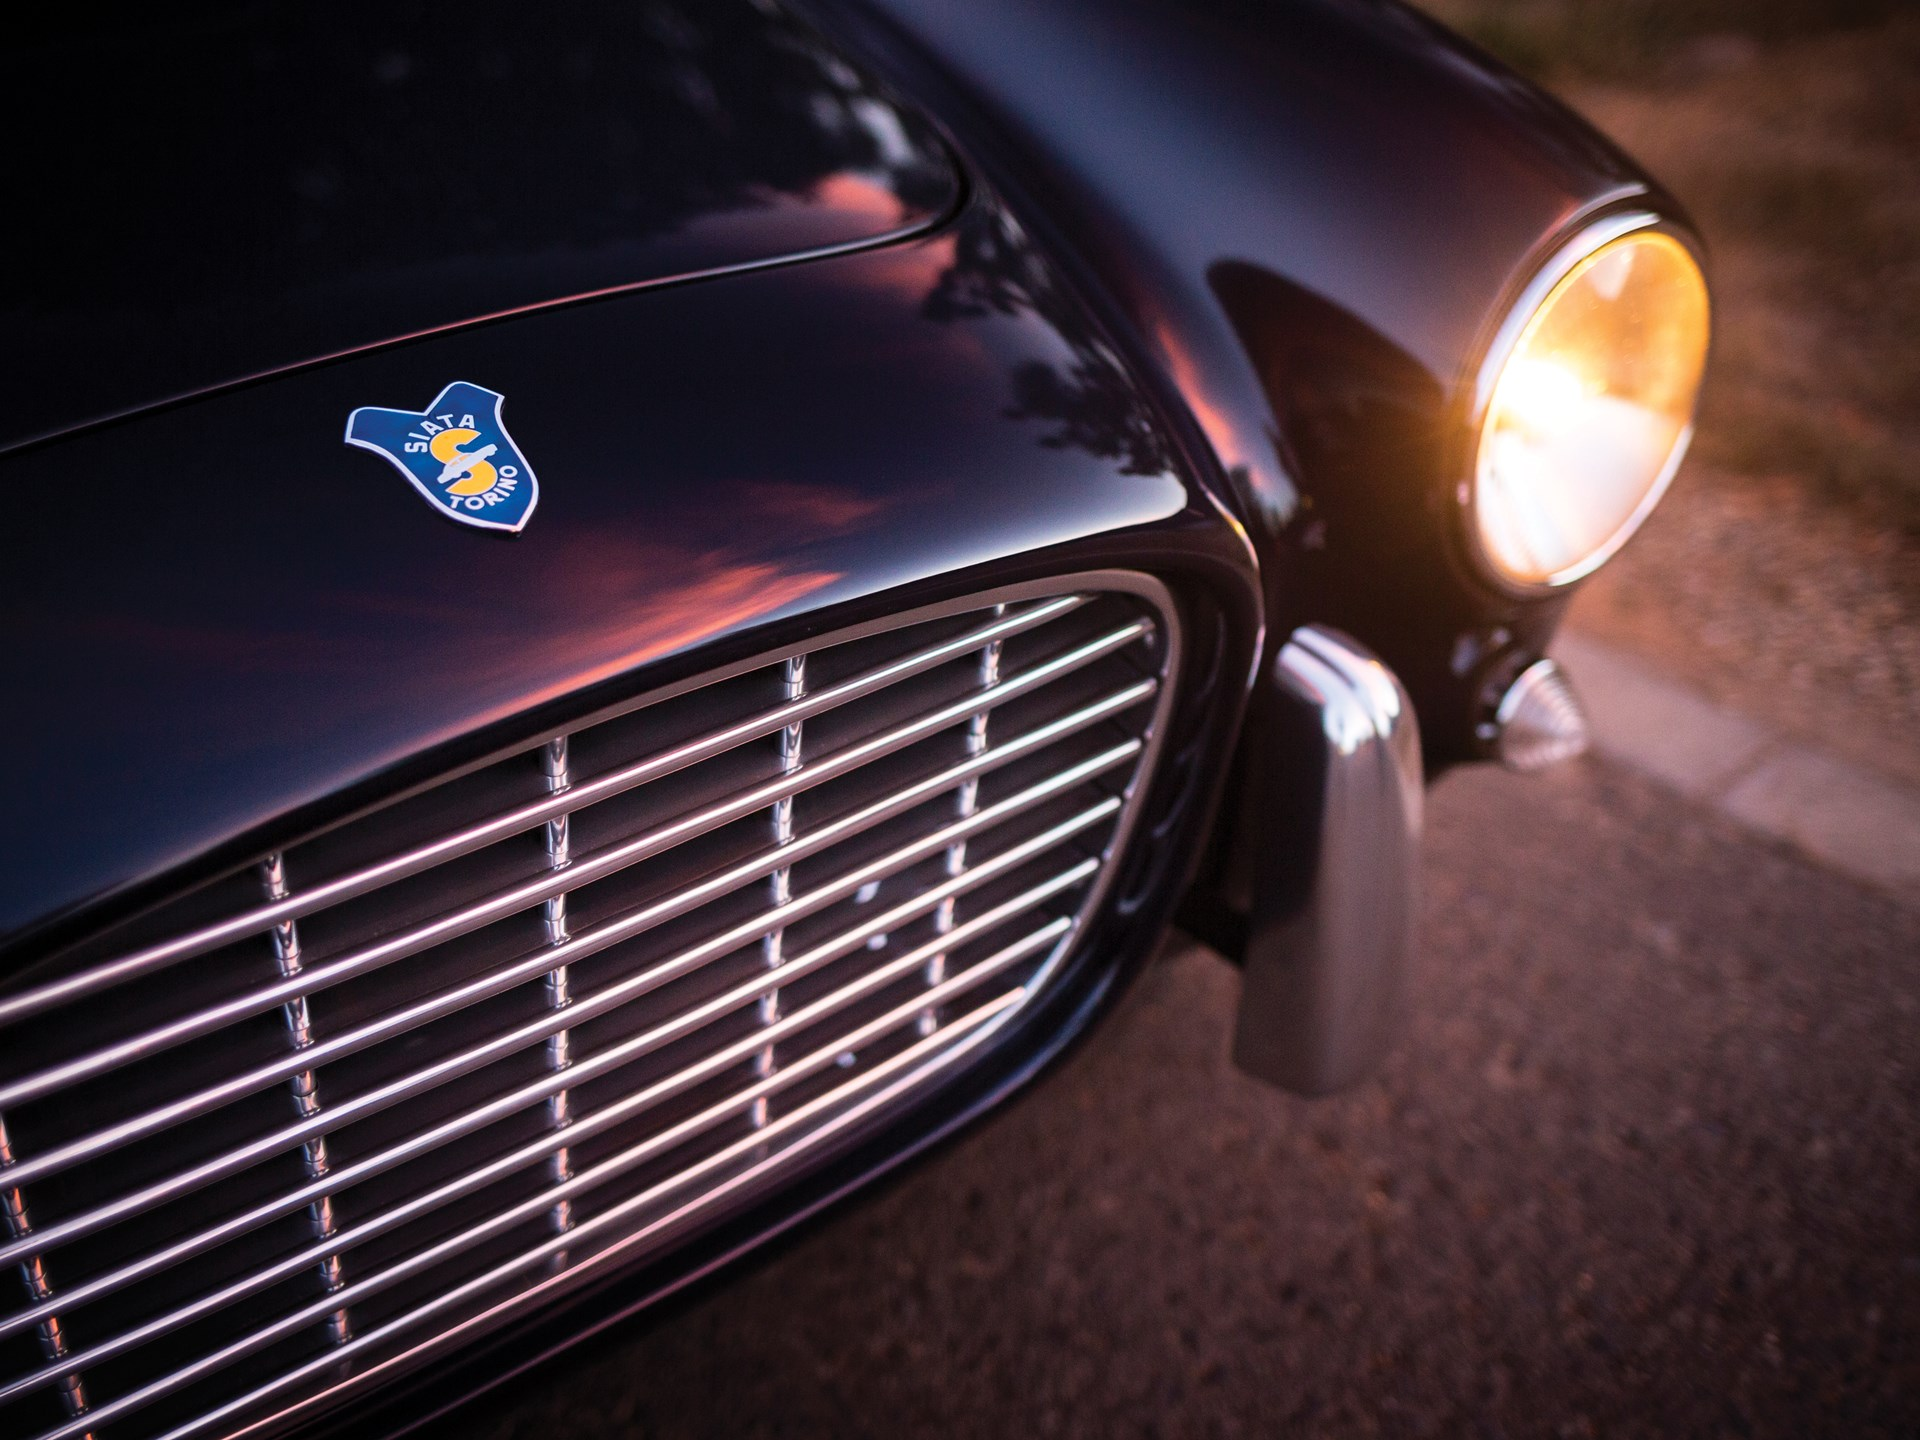 RM Sotheby's - 1954 Siata 208S Spider by Motto | New York